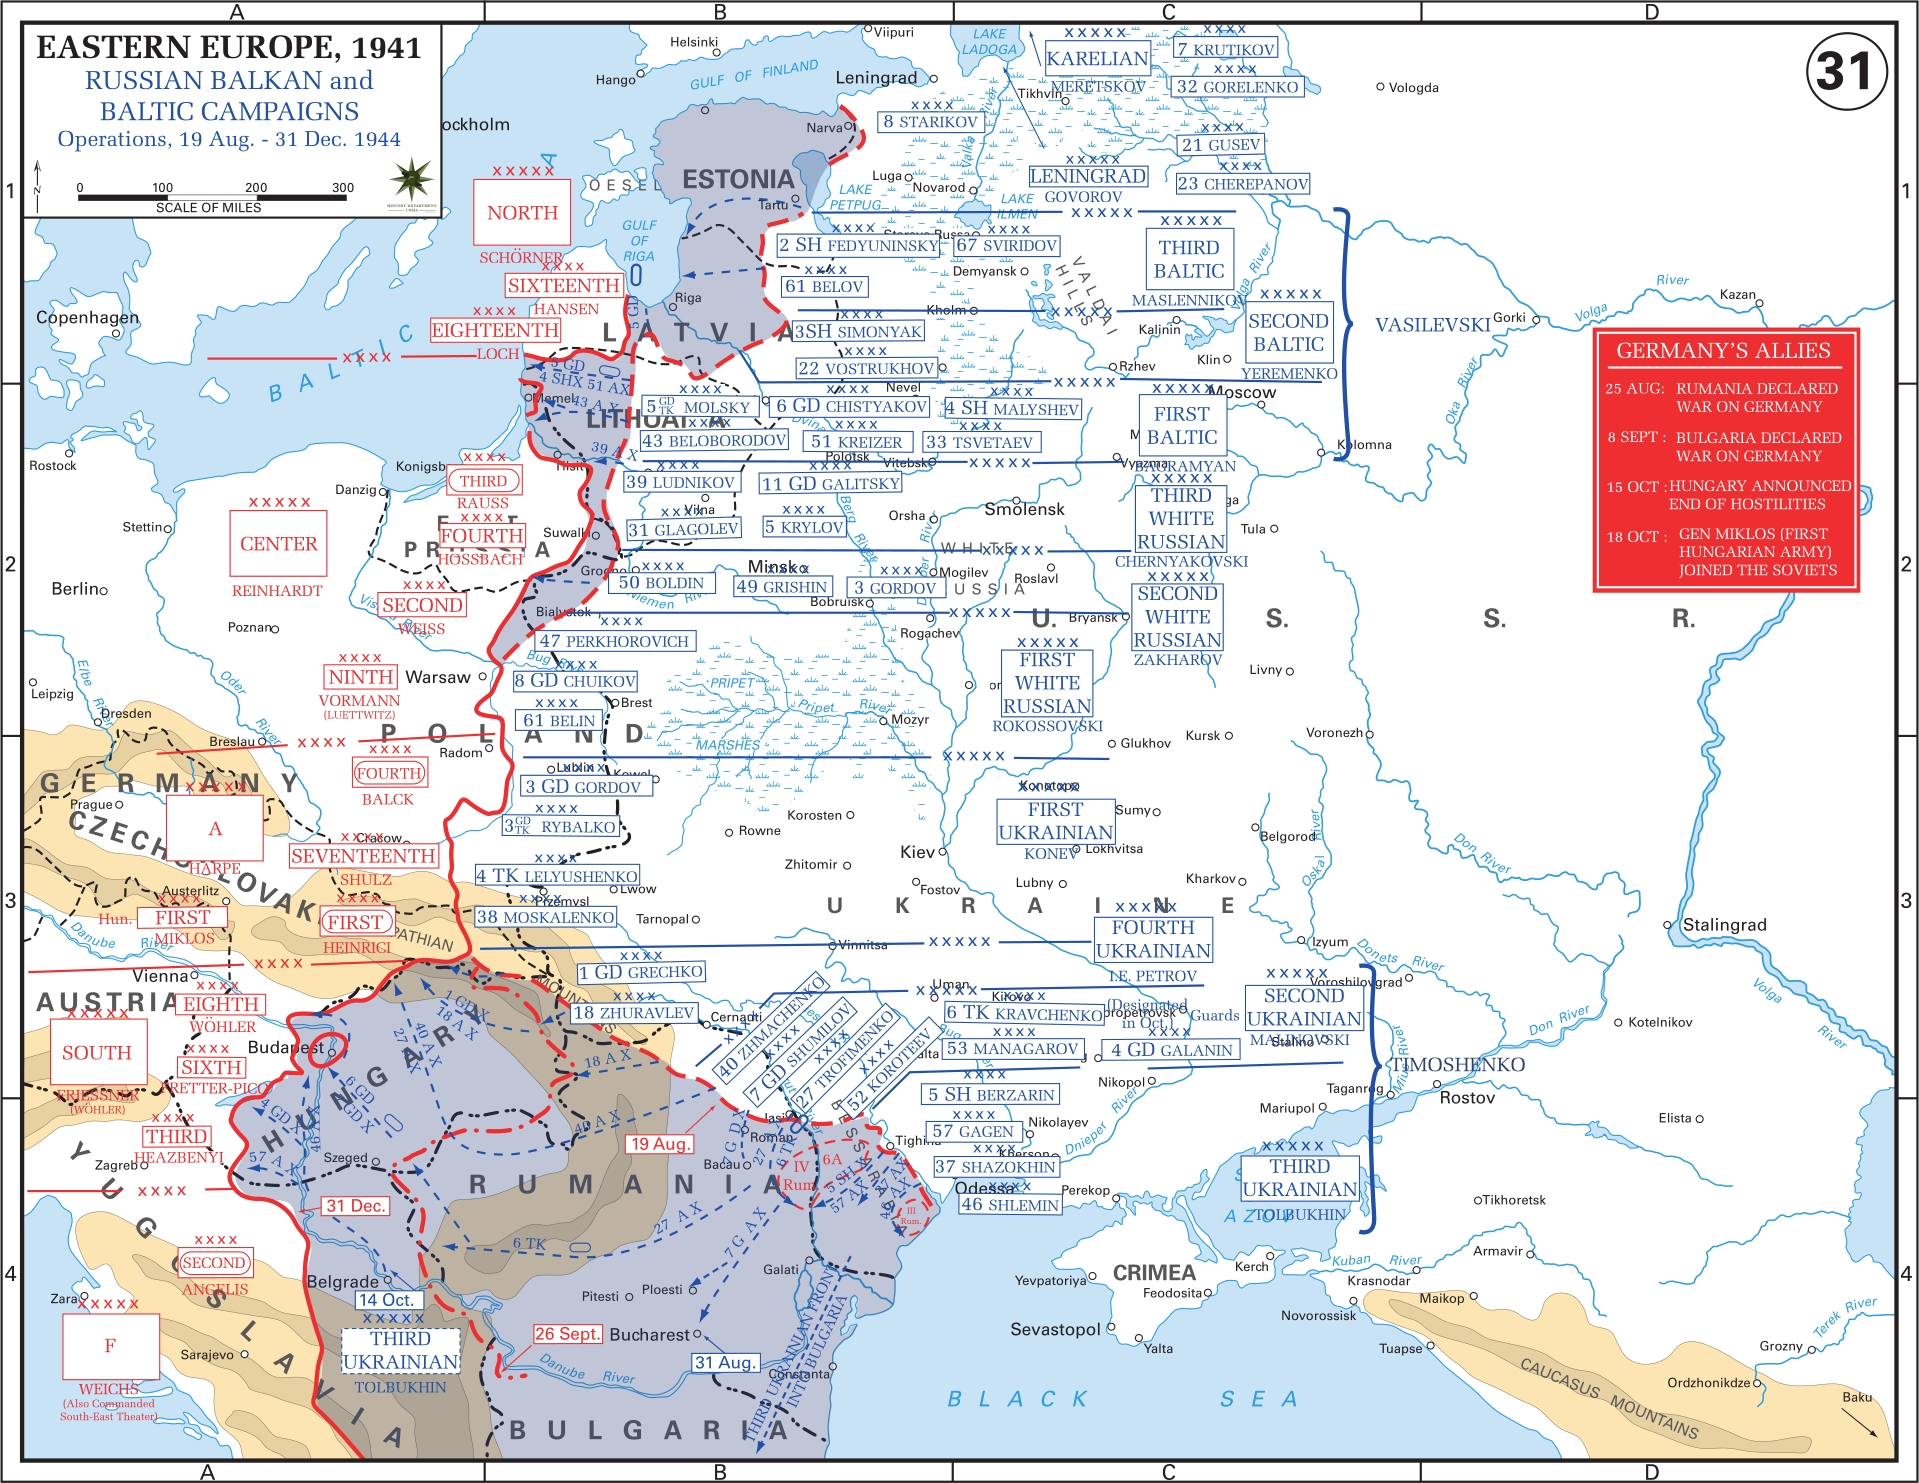 Eastern Front Maps Of World War Ii - Inflab - Medium within Germany Map Of Ww2